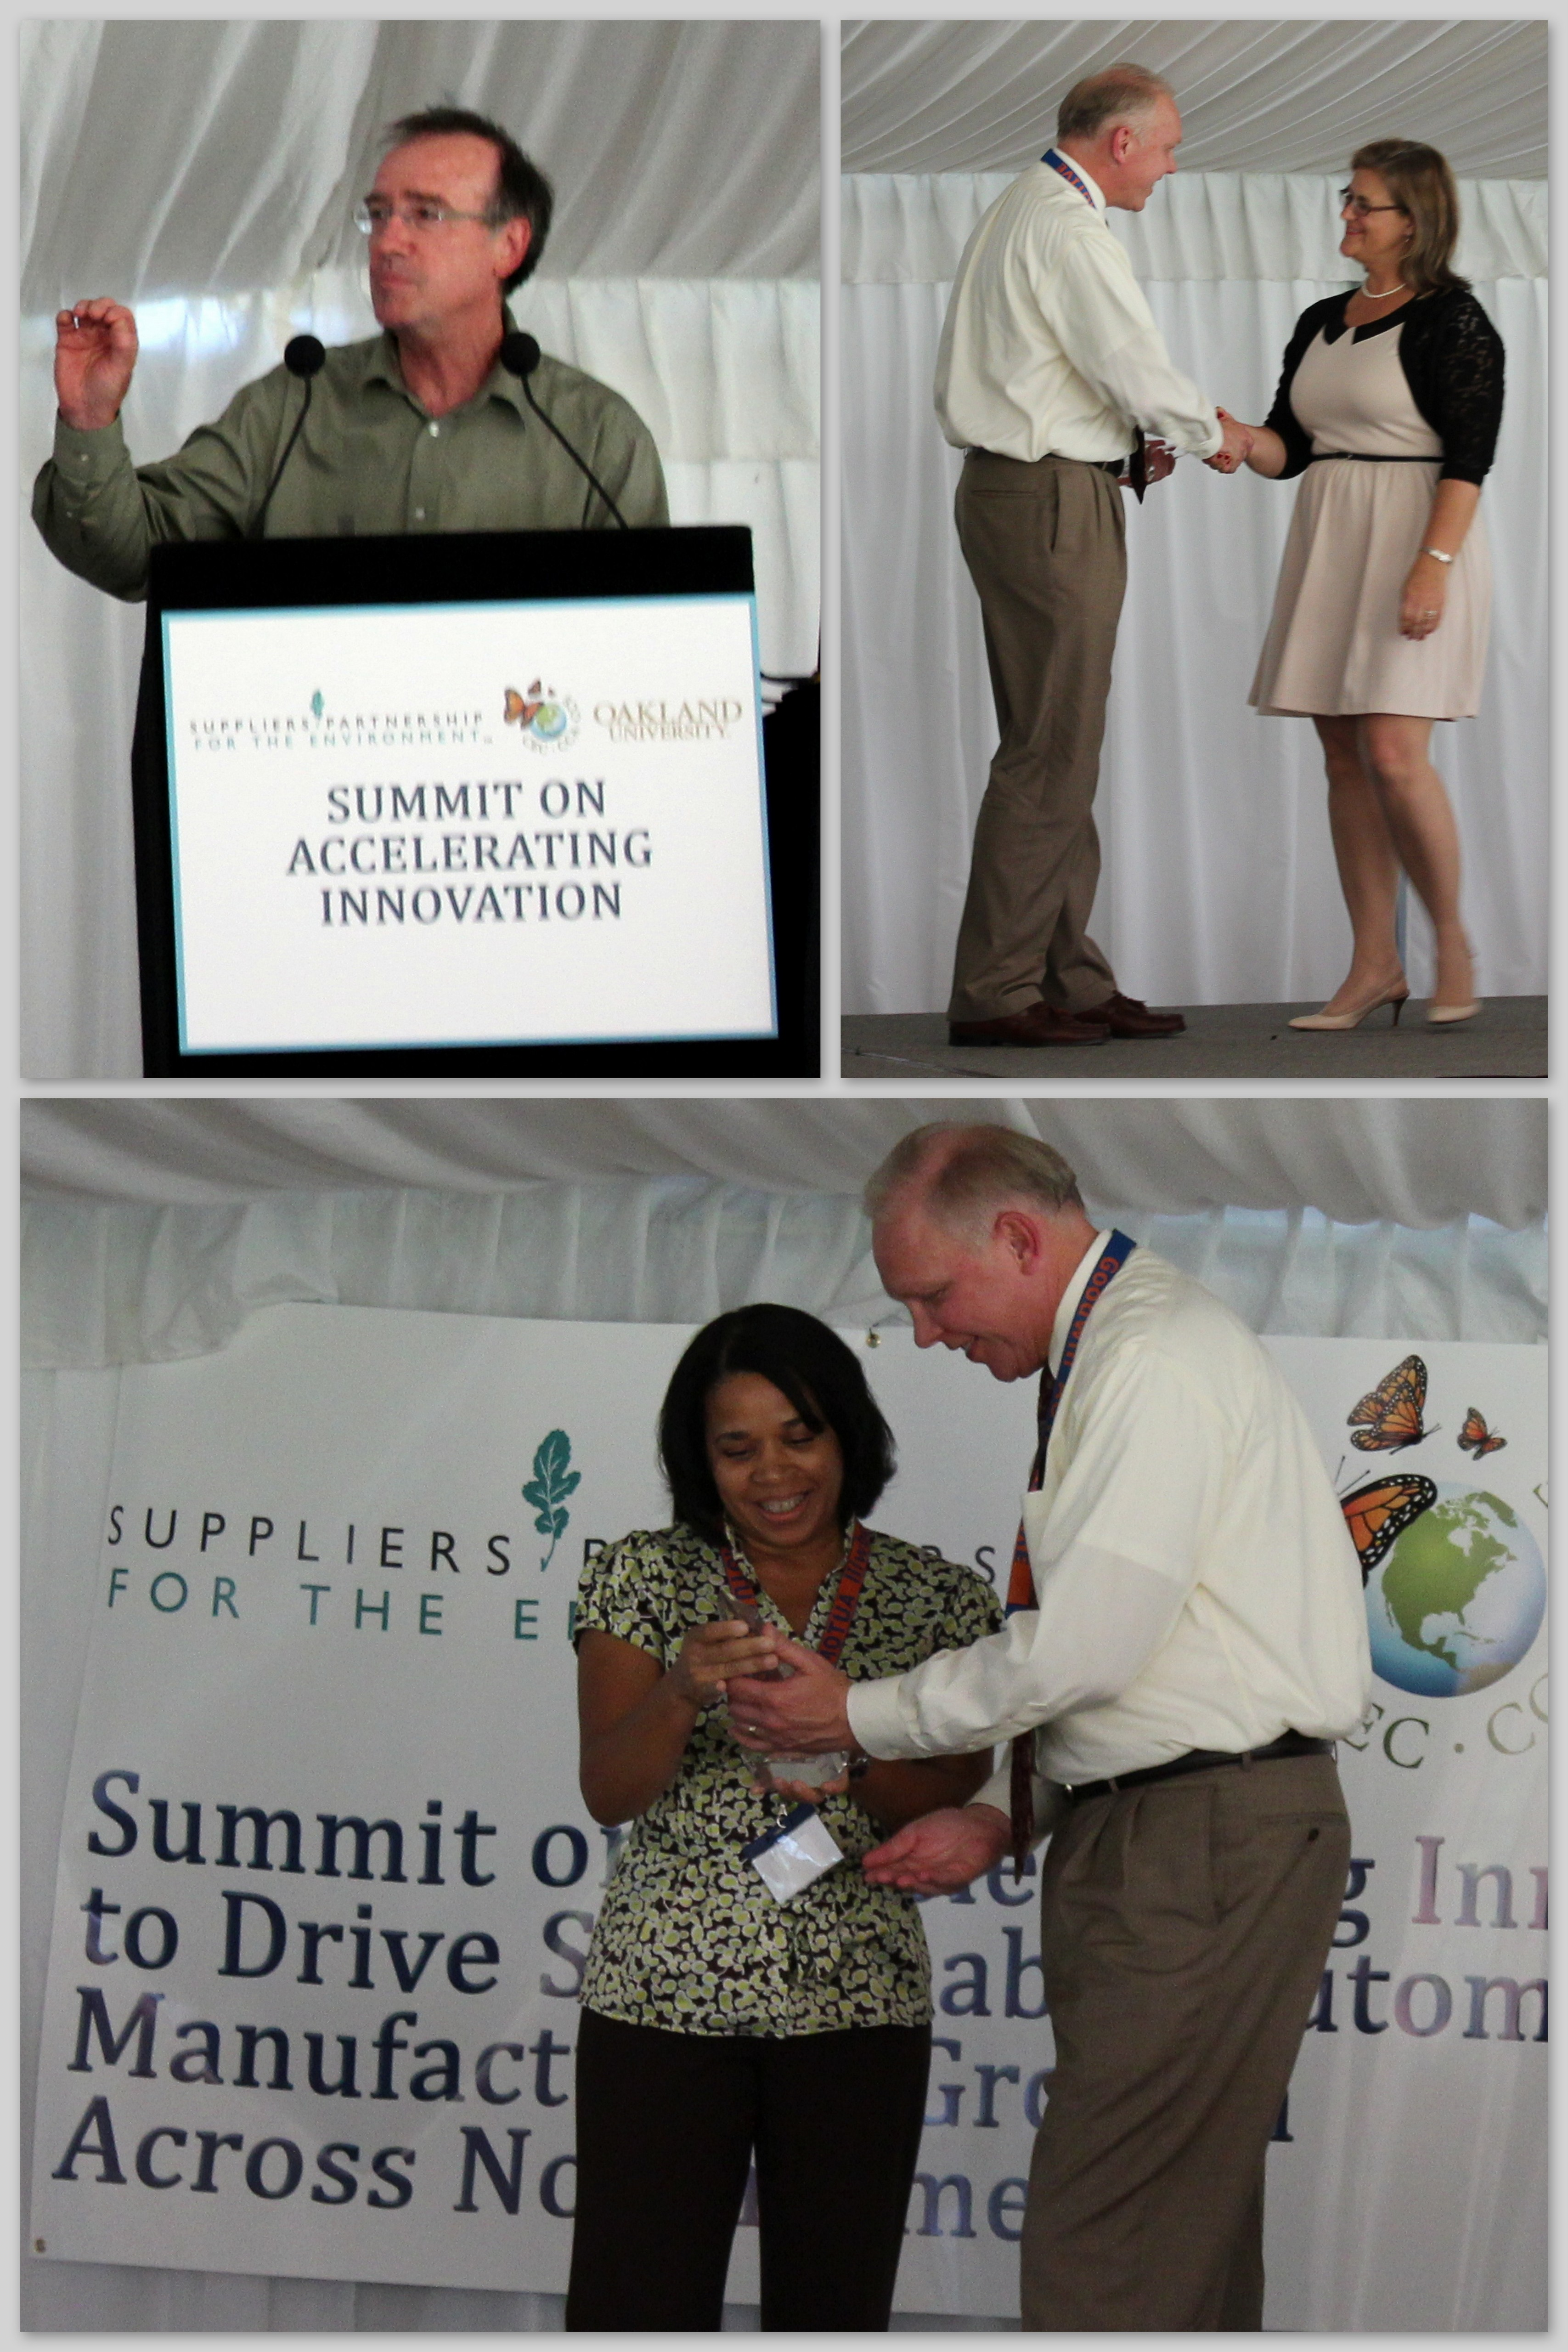 SP Presents GM, Gage Products Company and International Products Corporation with Sustainable Innovation Awards